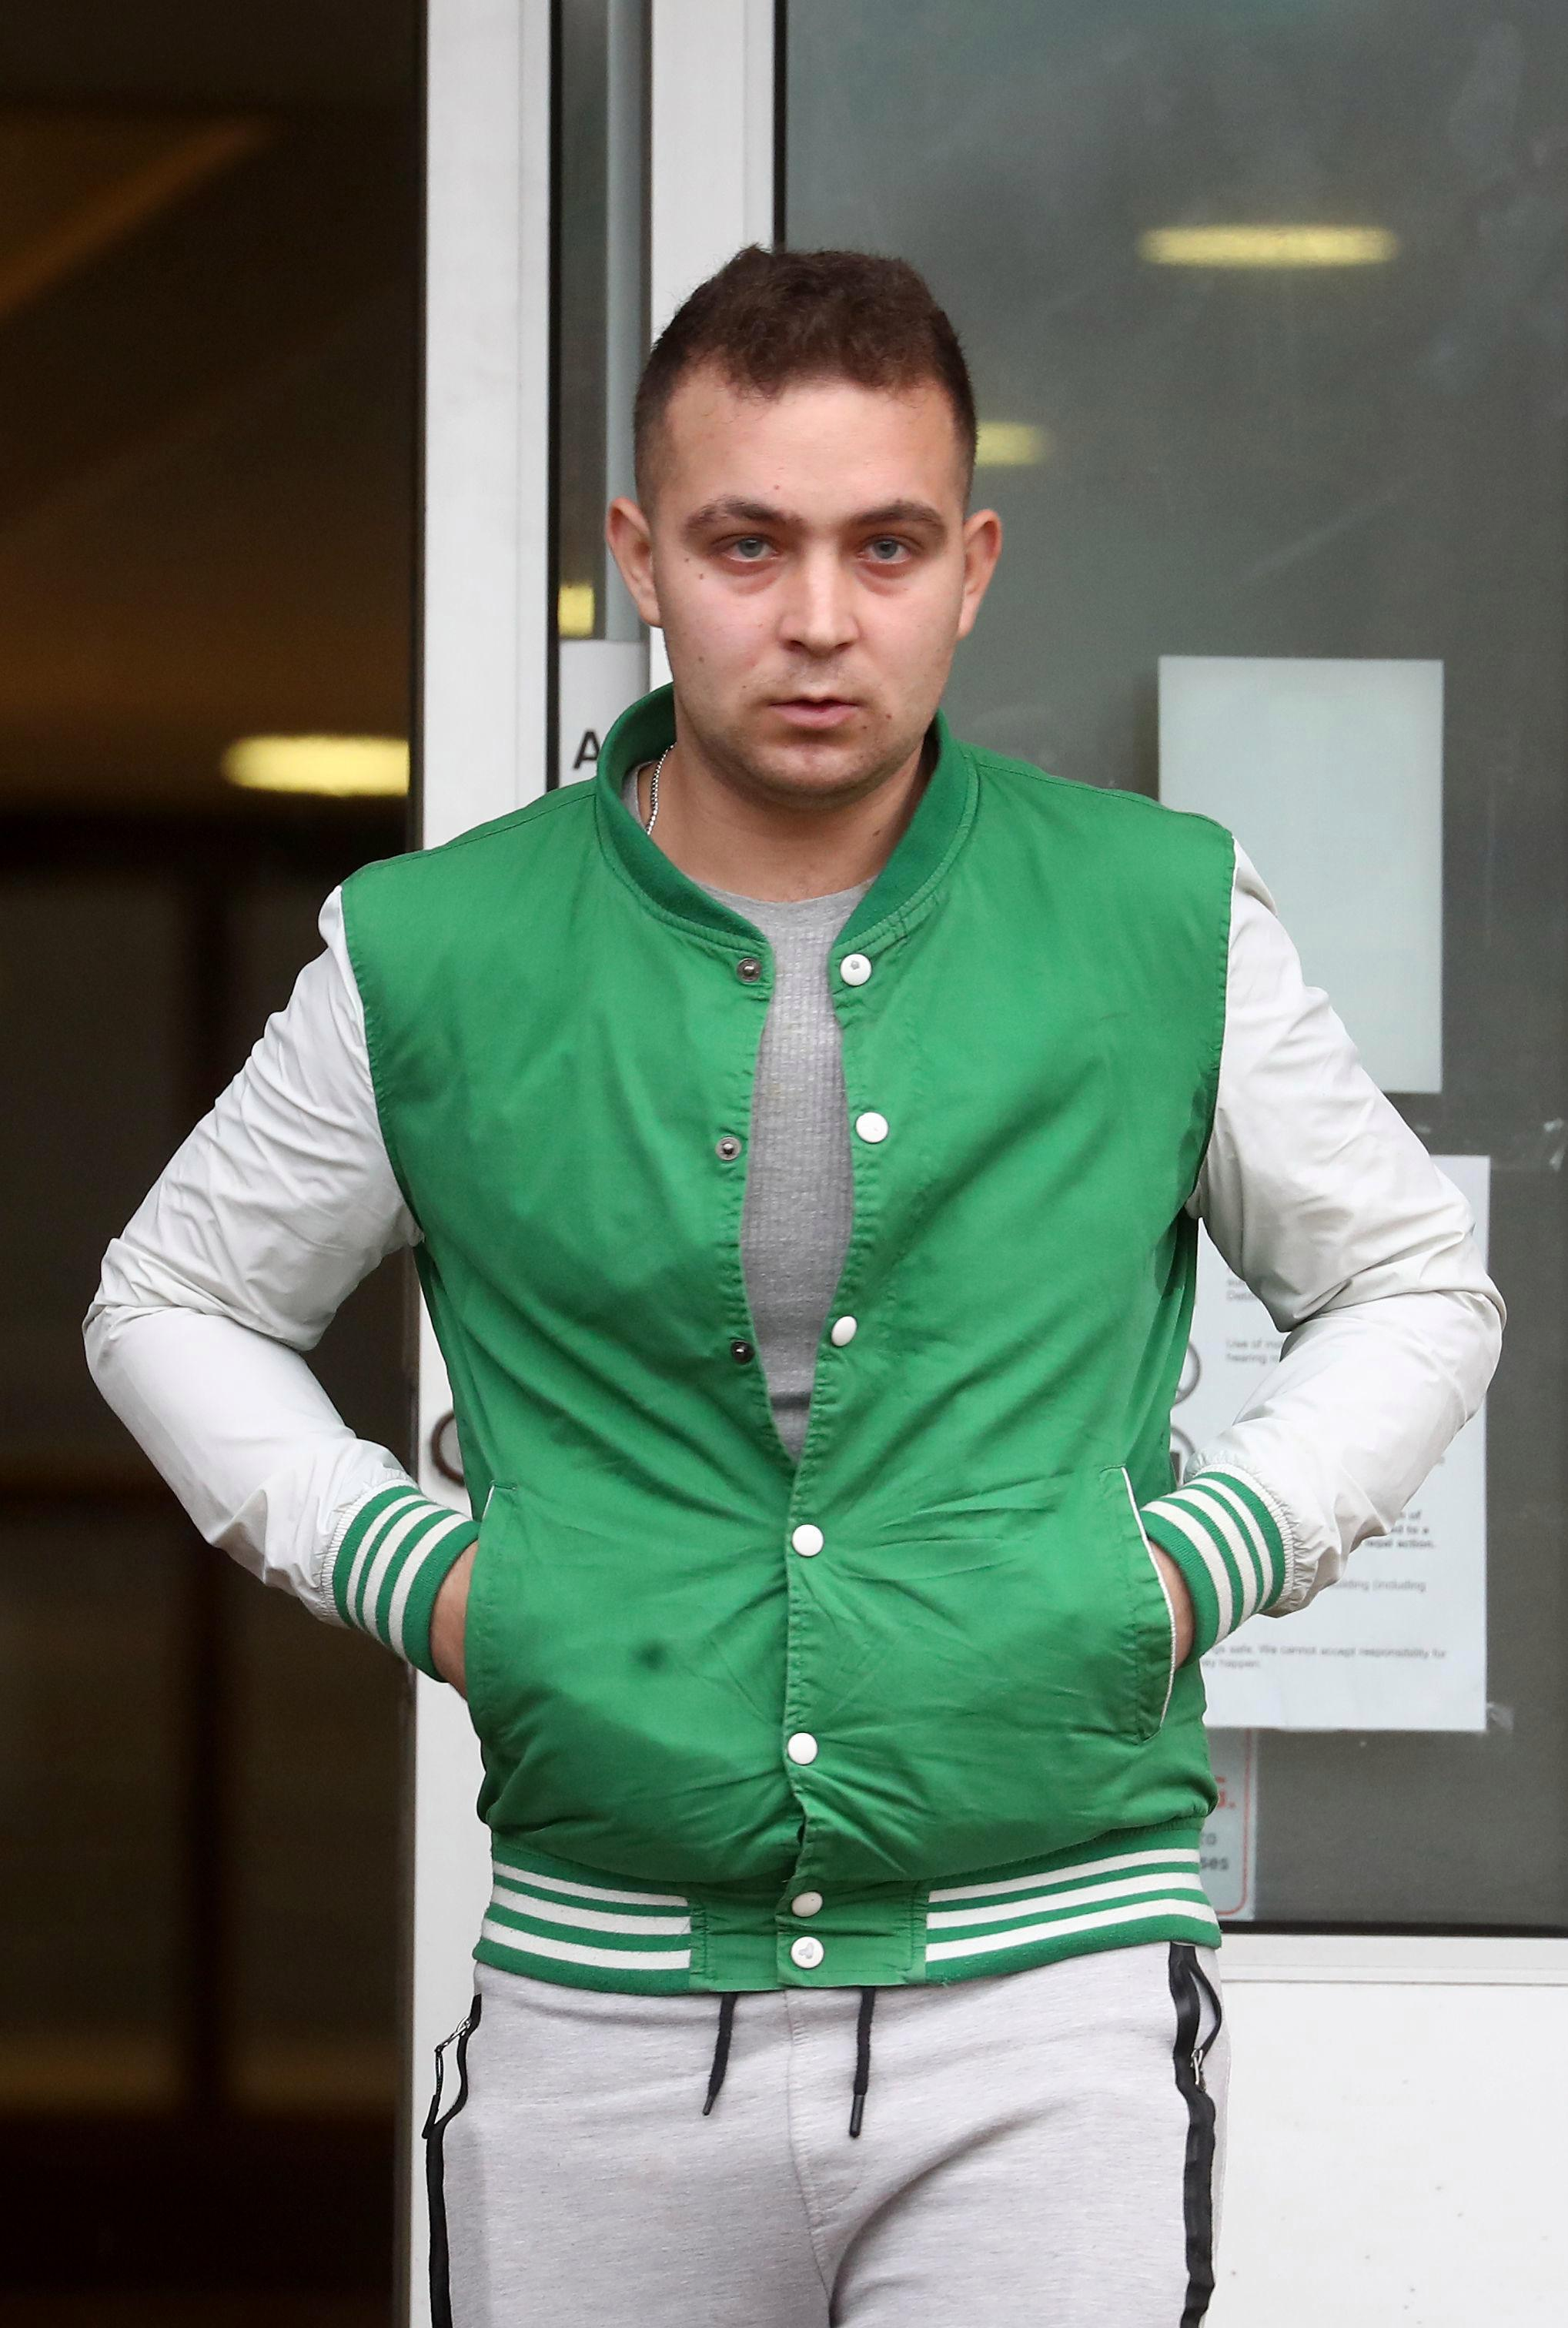 Romanian dishwasher who groped women's bums walks FREE from court 'because he can't speak English'